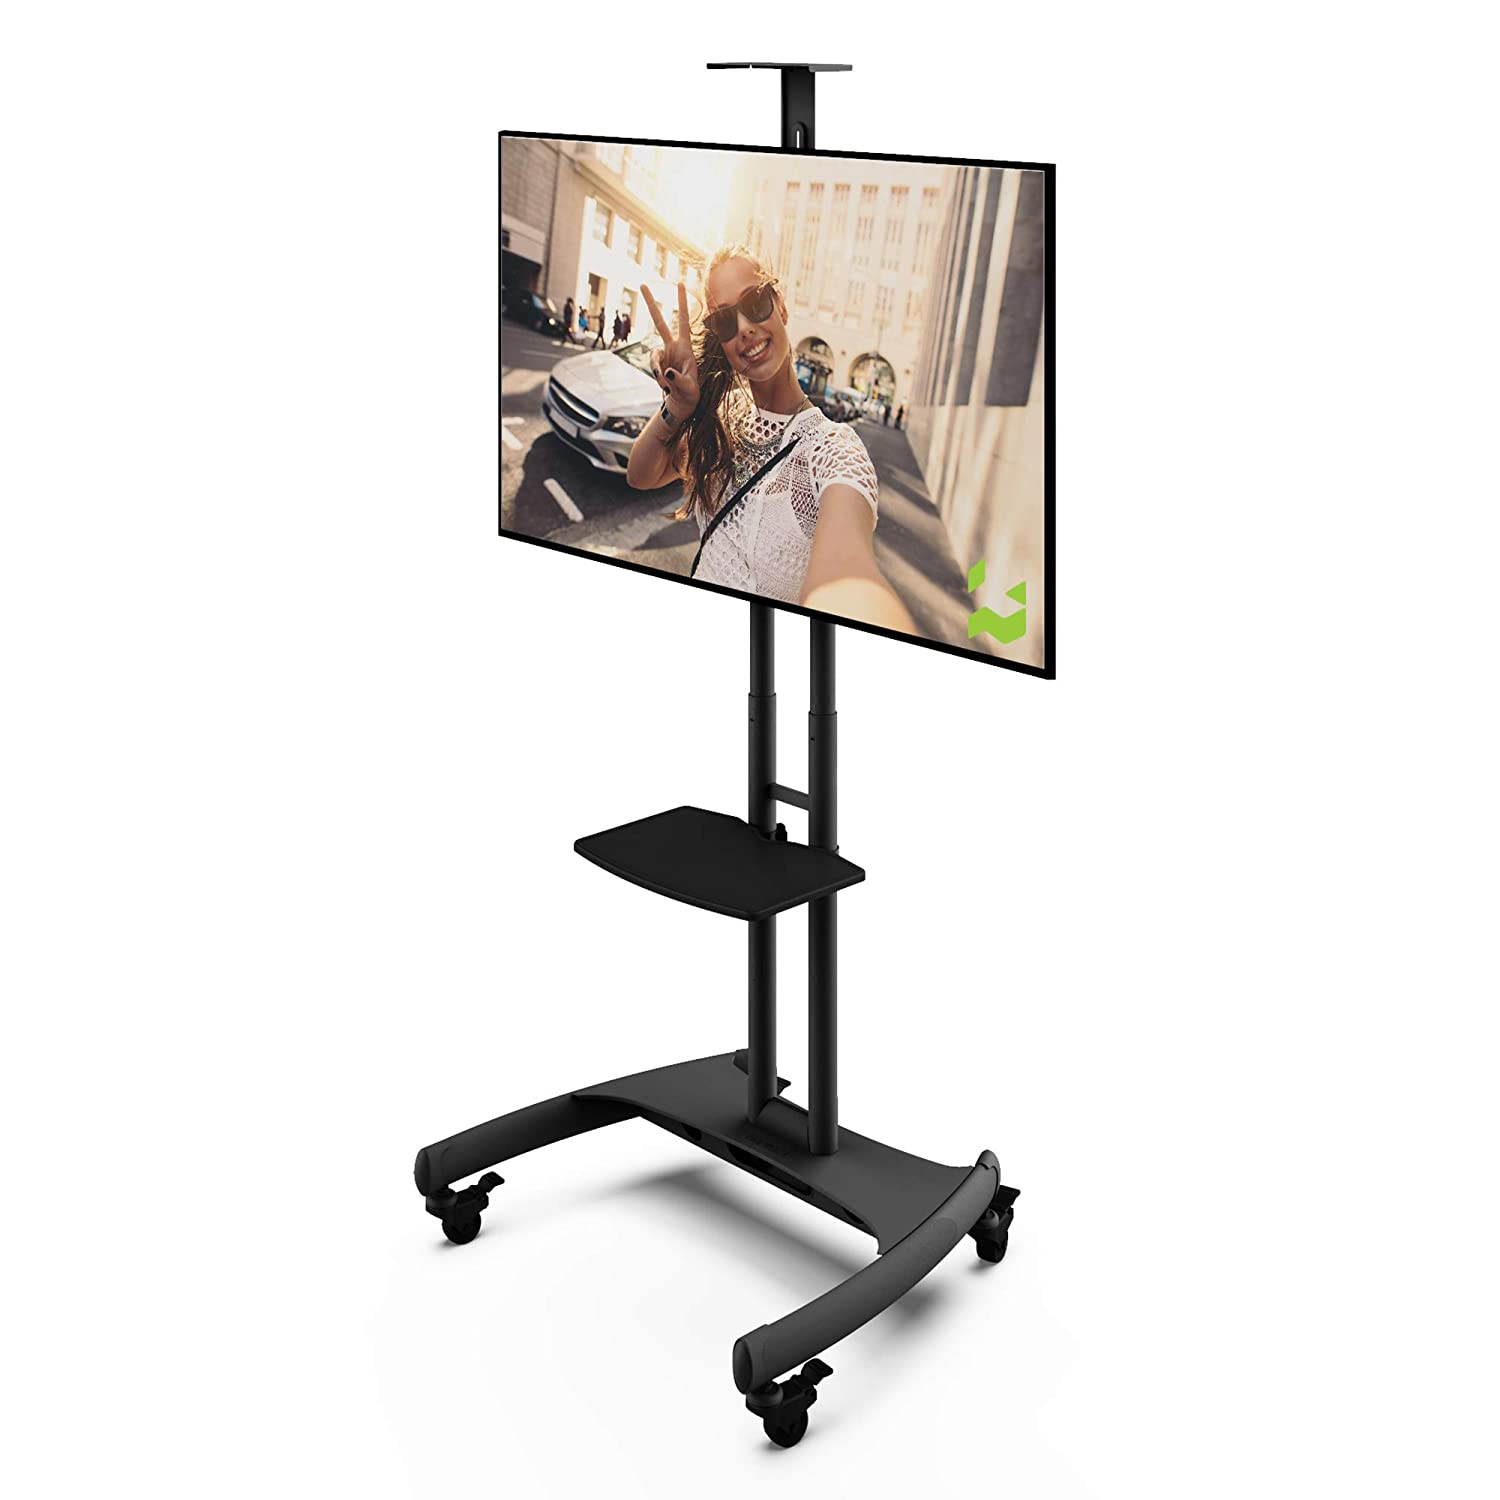 Kanto MTM65PL Mobile TV Stand with Mount for 37 to 65 inch Flat Panel Screens